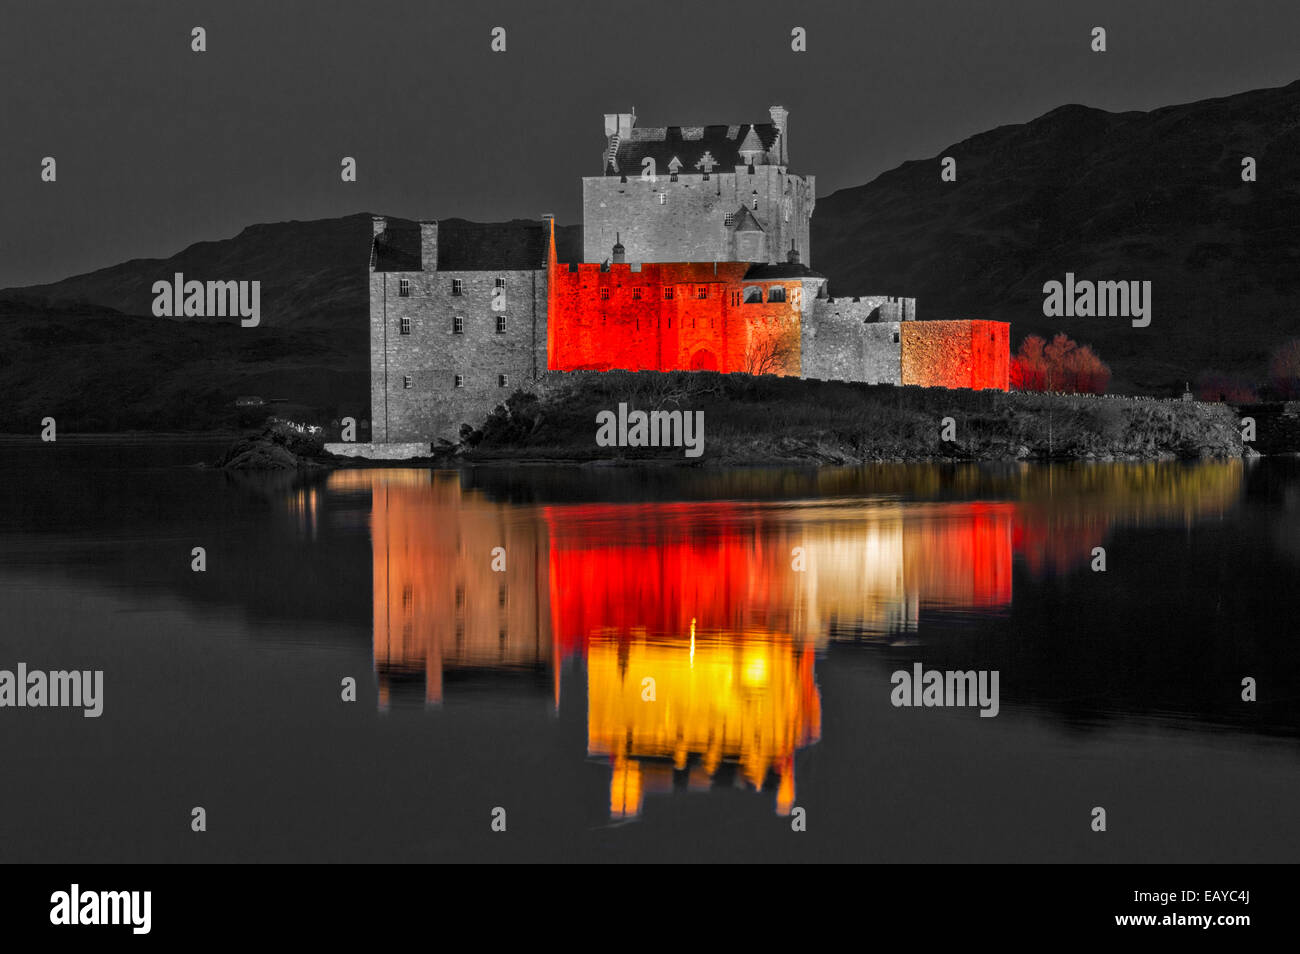 EILEAN DONAN CASTLE DORNIE EVENING  RED LIGHTS REFLECTION ON THE SEA LOCH FOR ARMISTICE DAY NOVEMBER 11 2014 - Stock Image